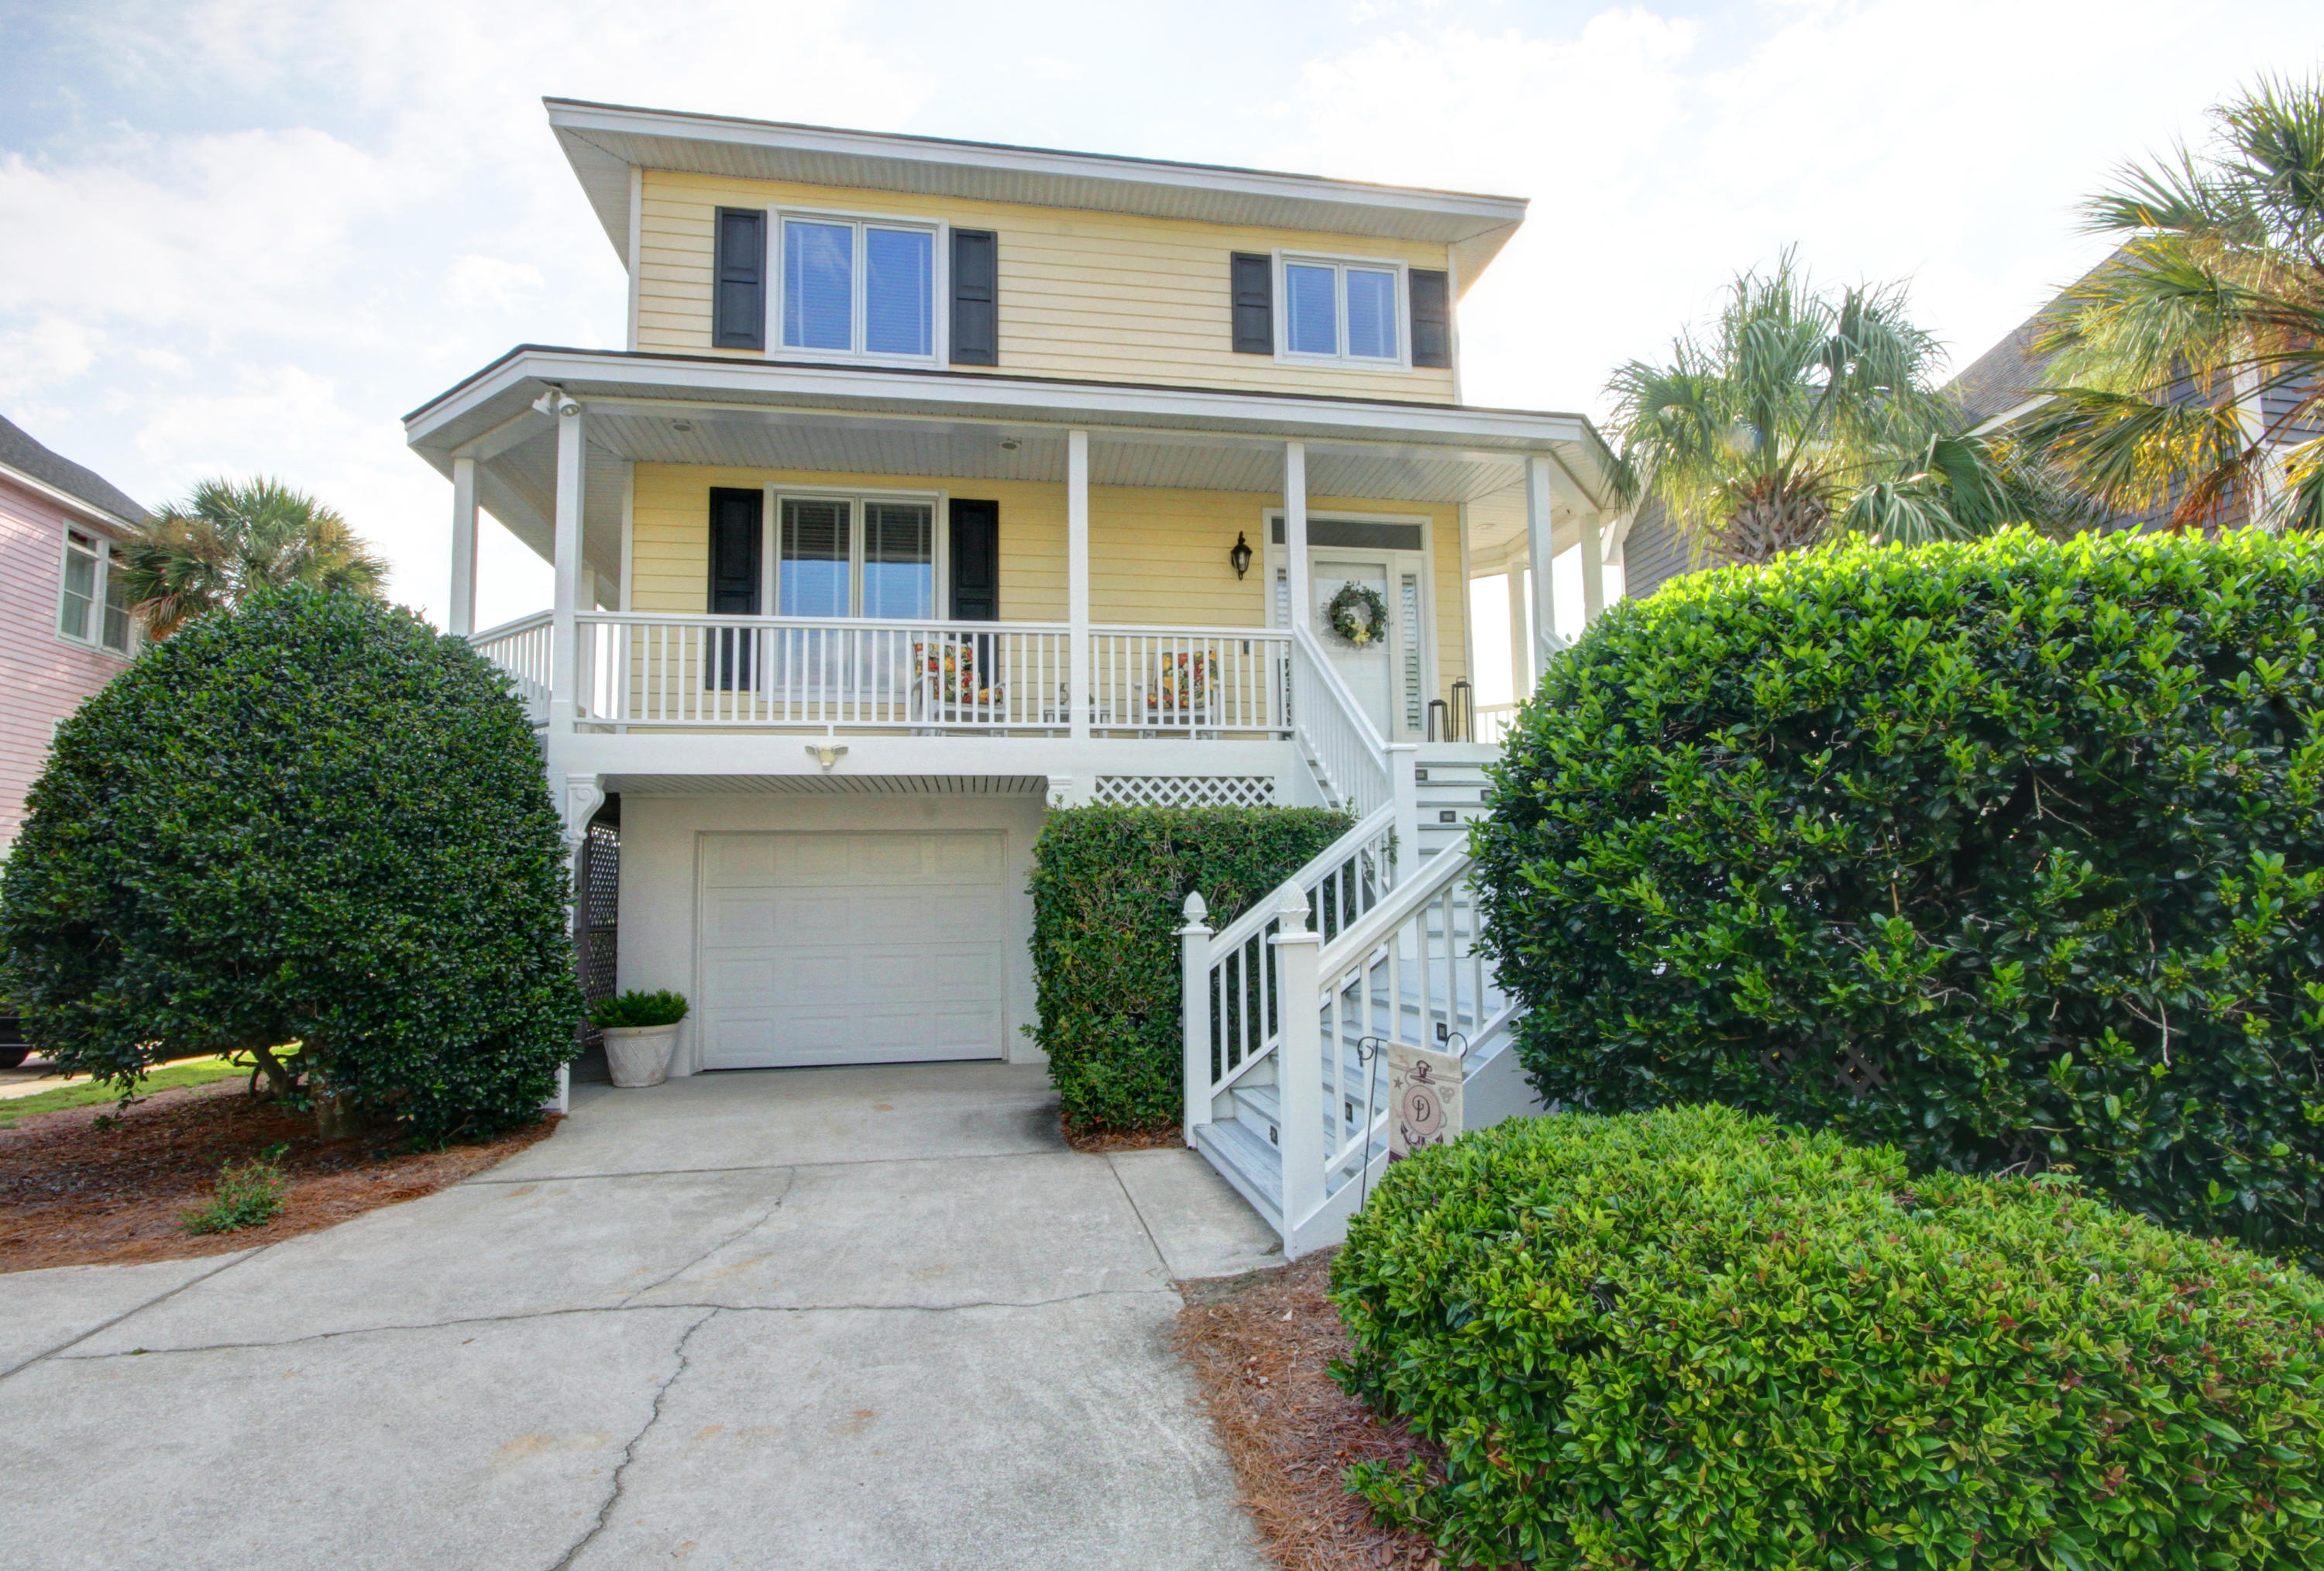 Wild Dunes Homes For Sale - 2 Morgan Pl, Isle of Palms, SC - 53